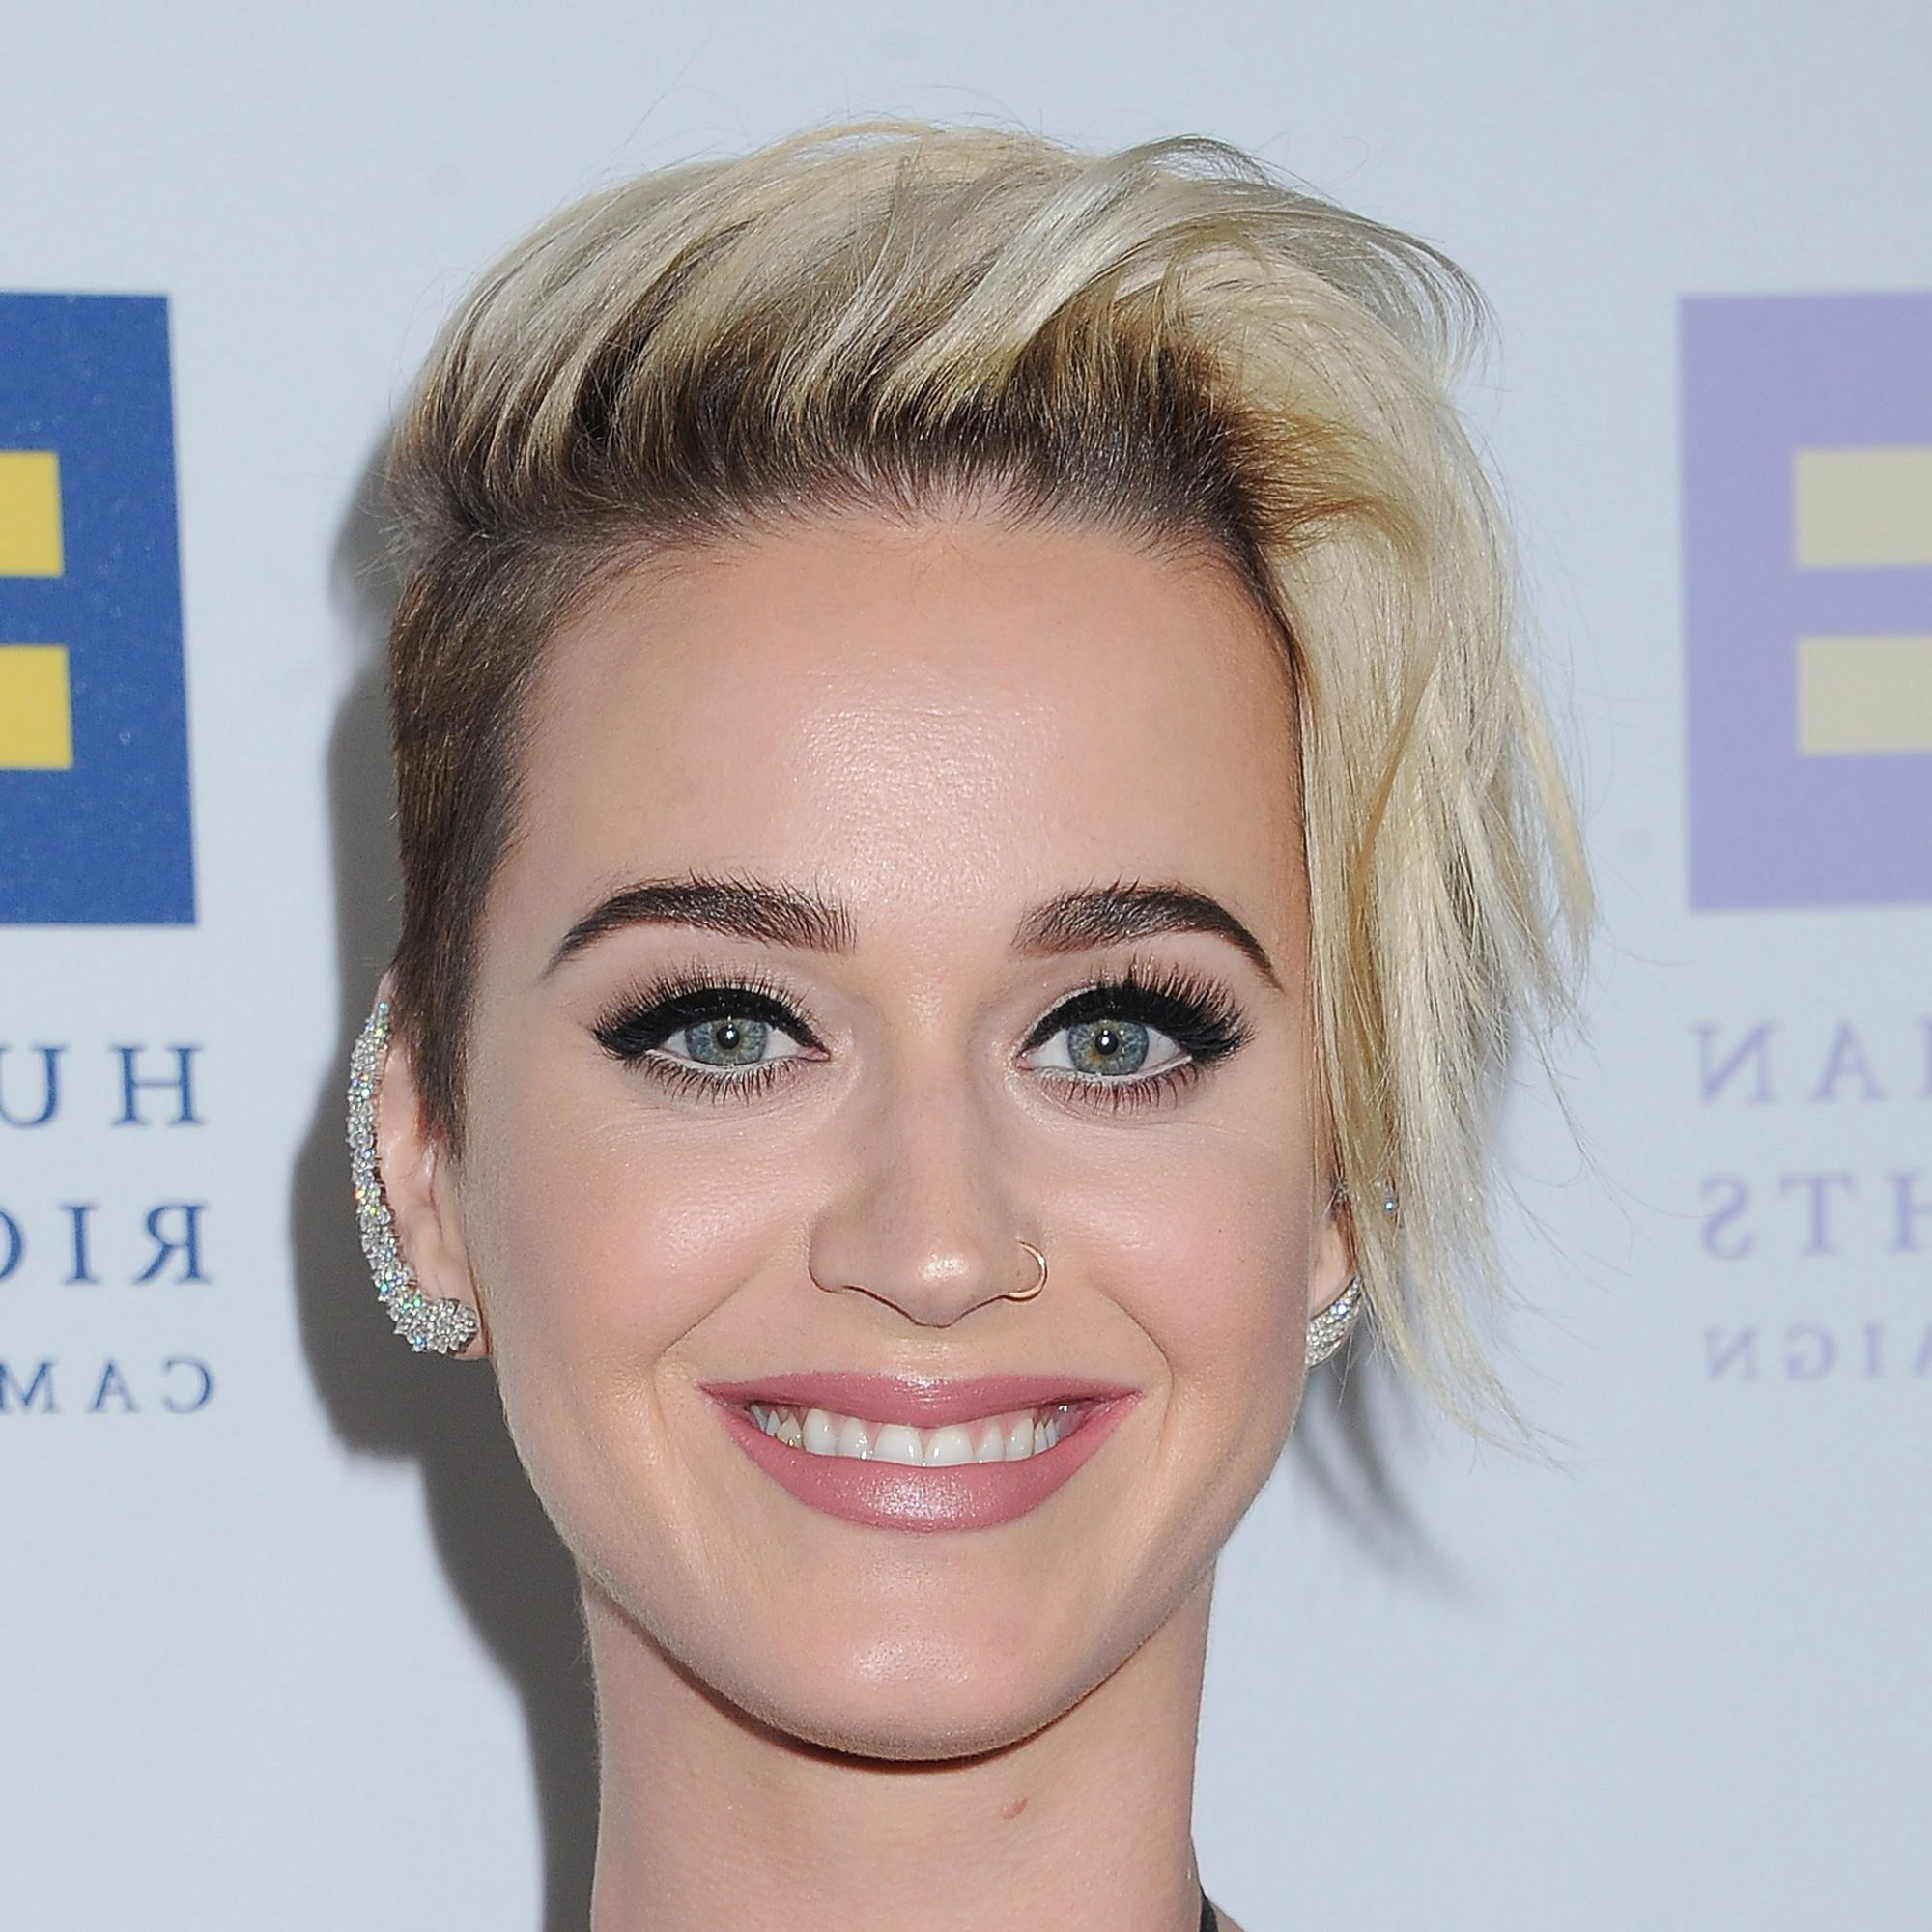 87 Cute Short Hairstyles & Haircuts - How To Style Short Hair inside Short Haircuts For High Foreheads